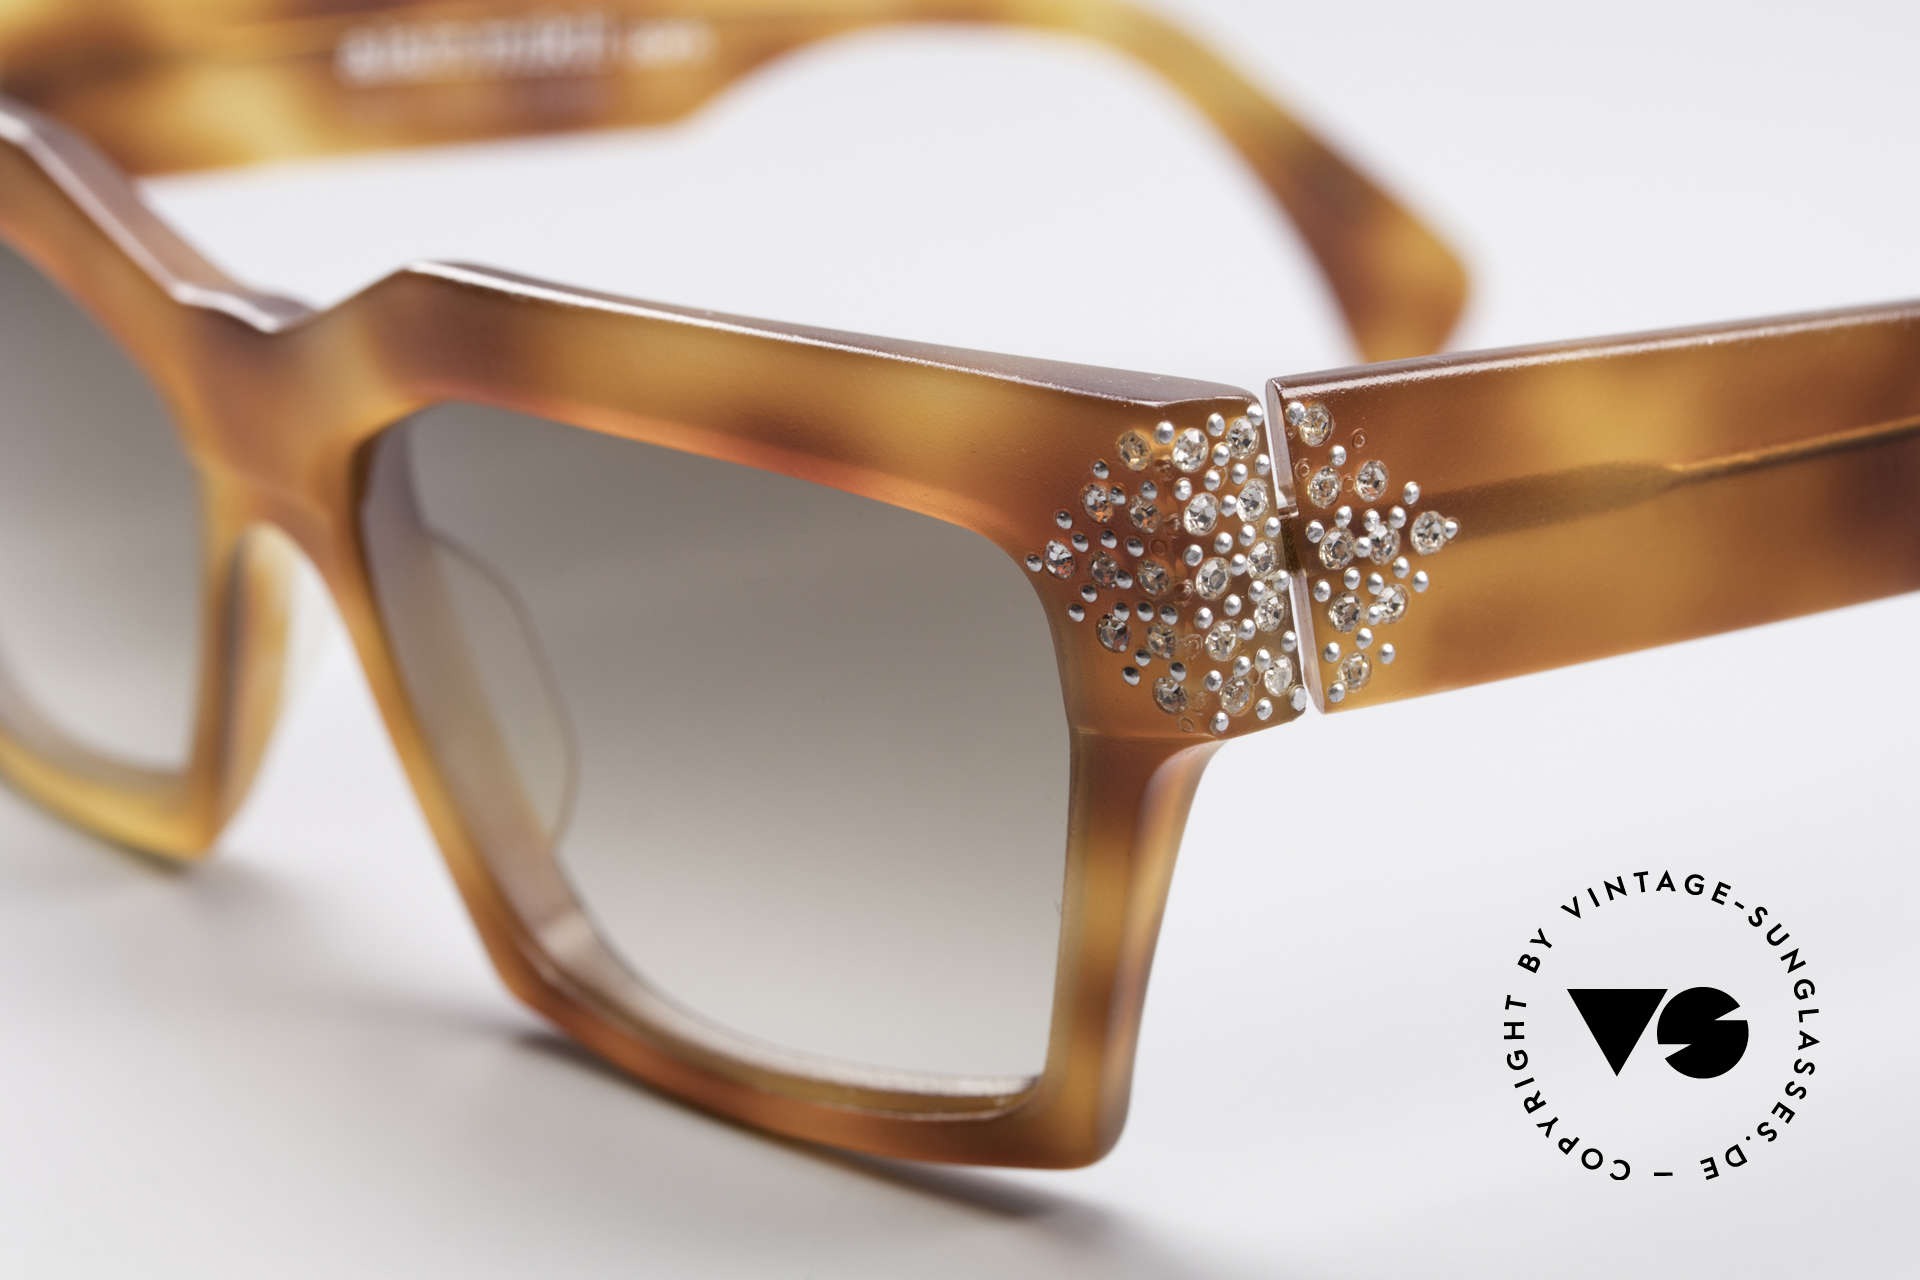 Alain Mikli 318 / 053 80's Gem Designer Sunglasses, hand made frame is decorated with small rhinestones!, Made for Women